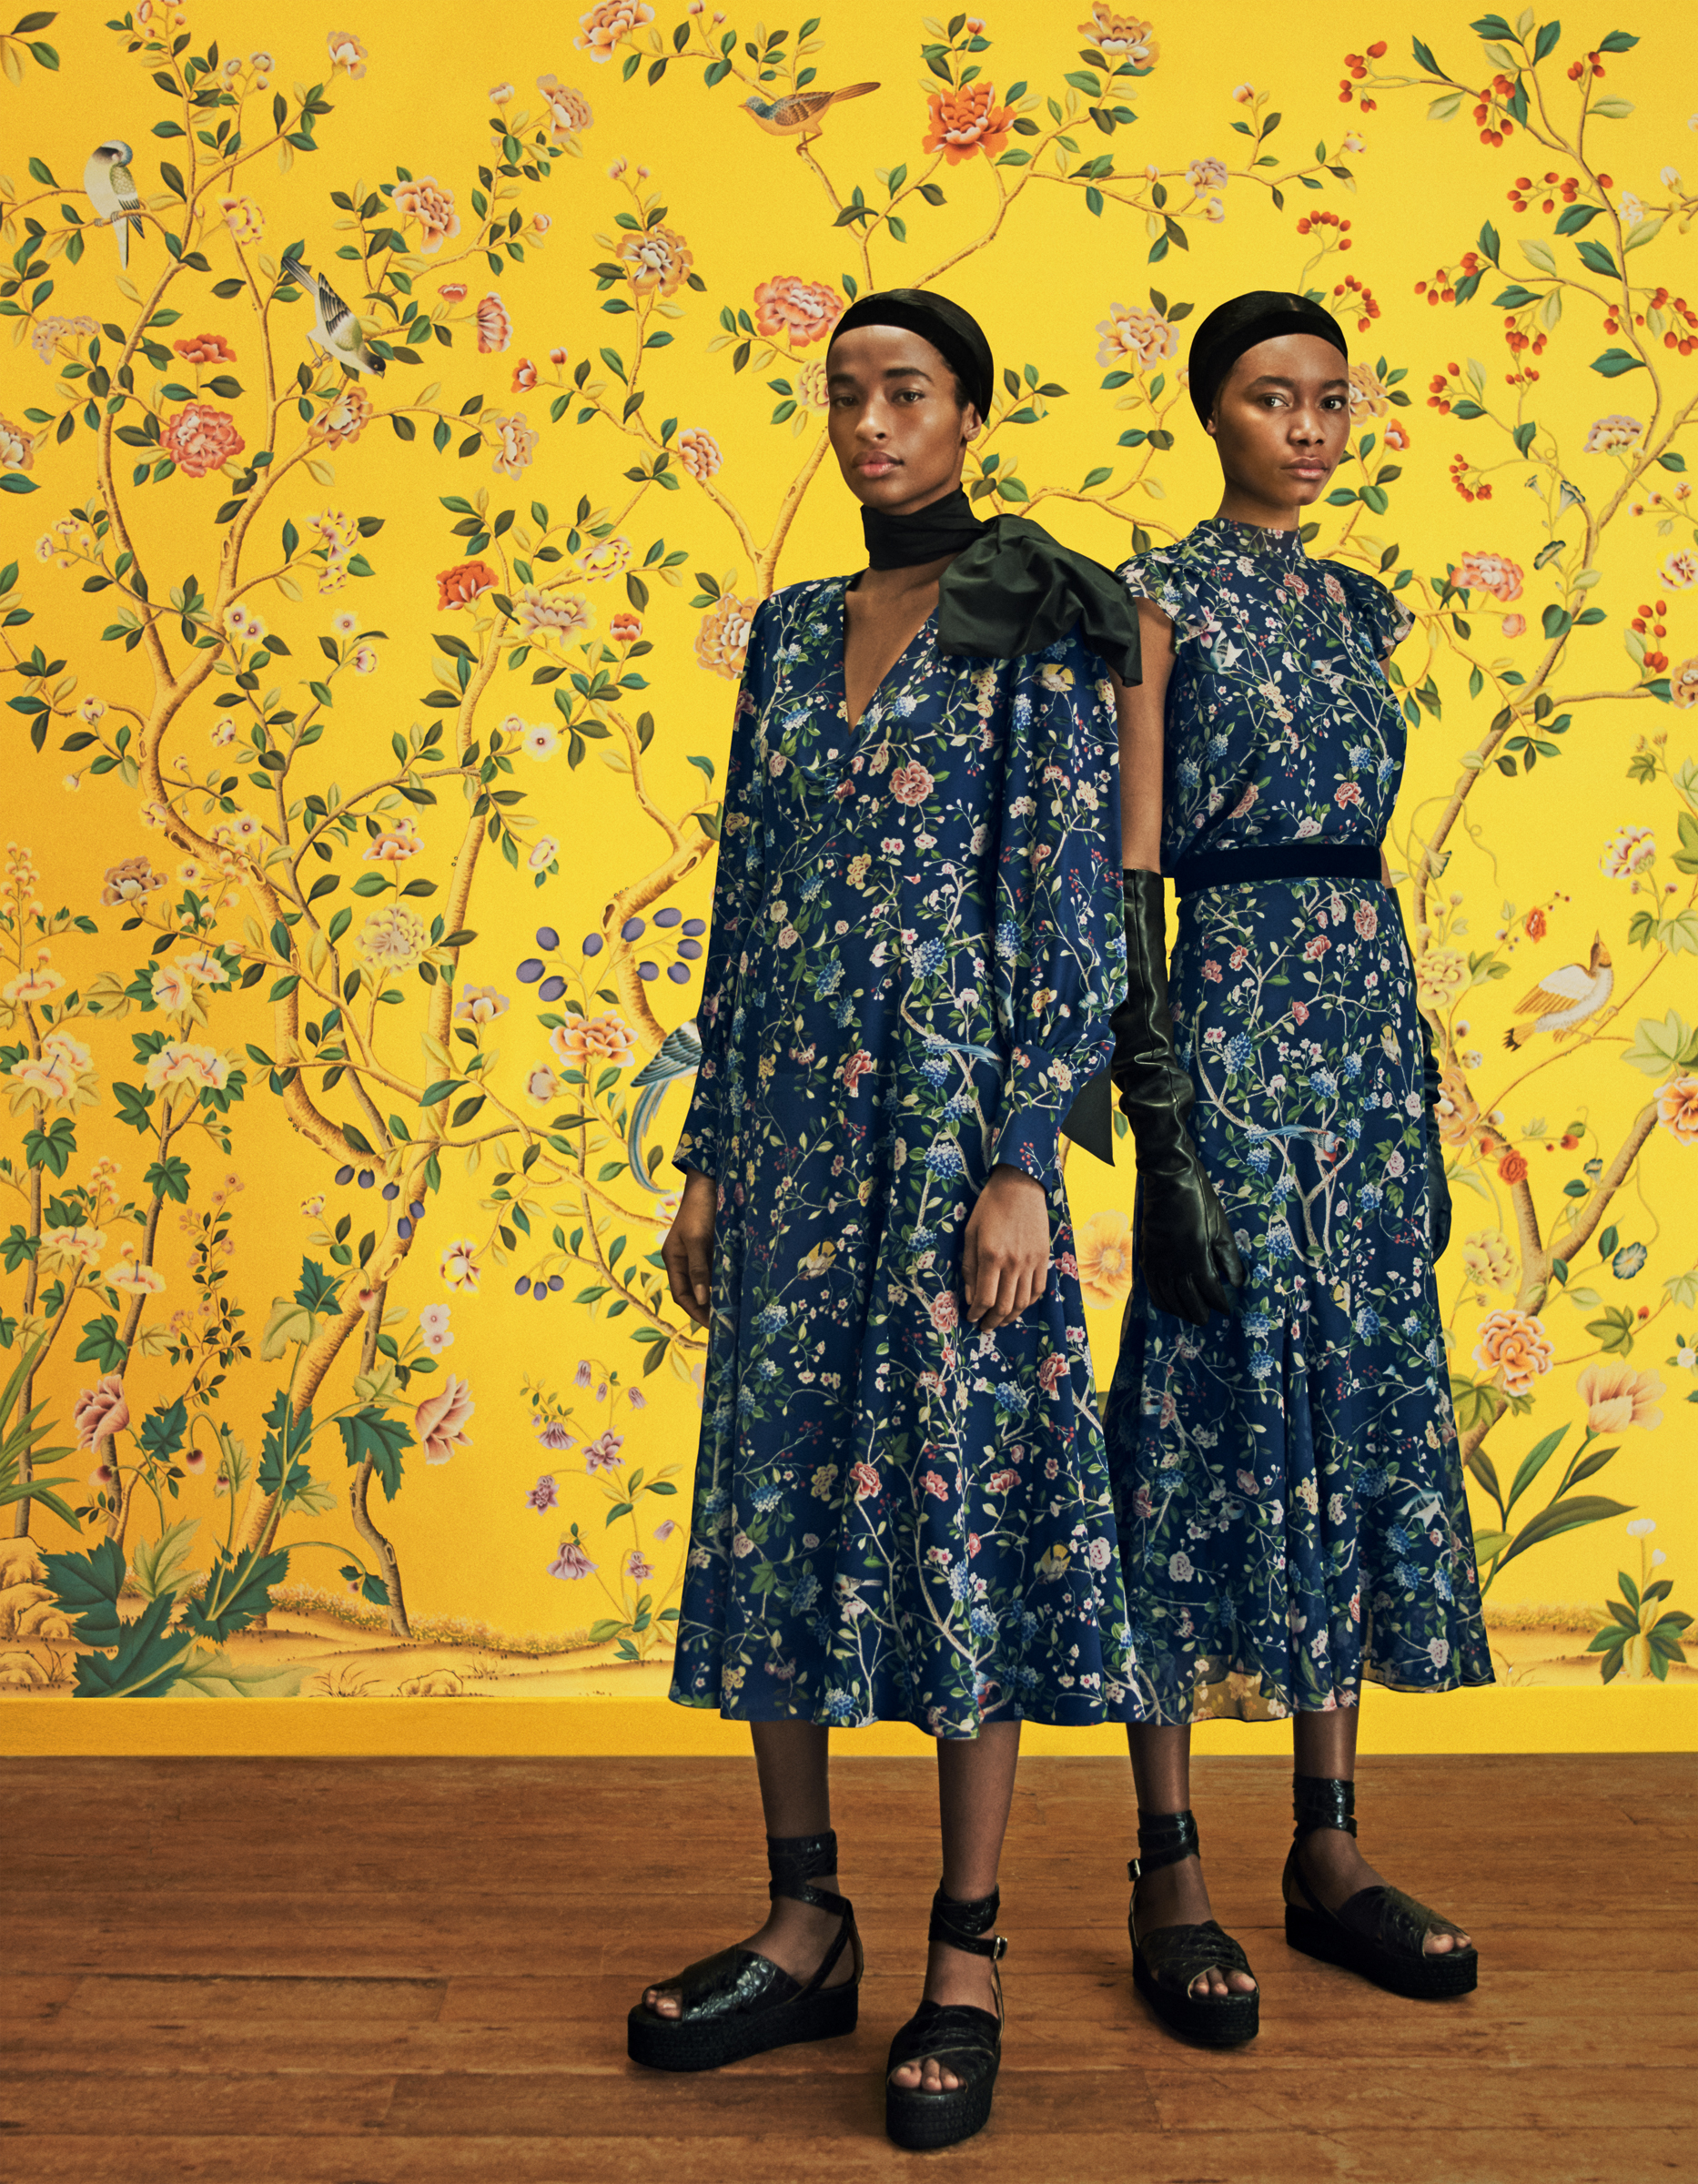 For the wall and the wardrobe – Erdem and De Gournay collaborate